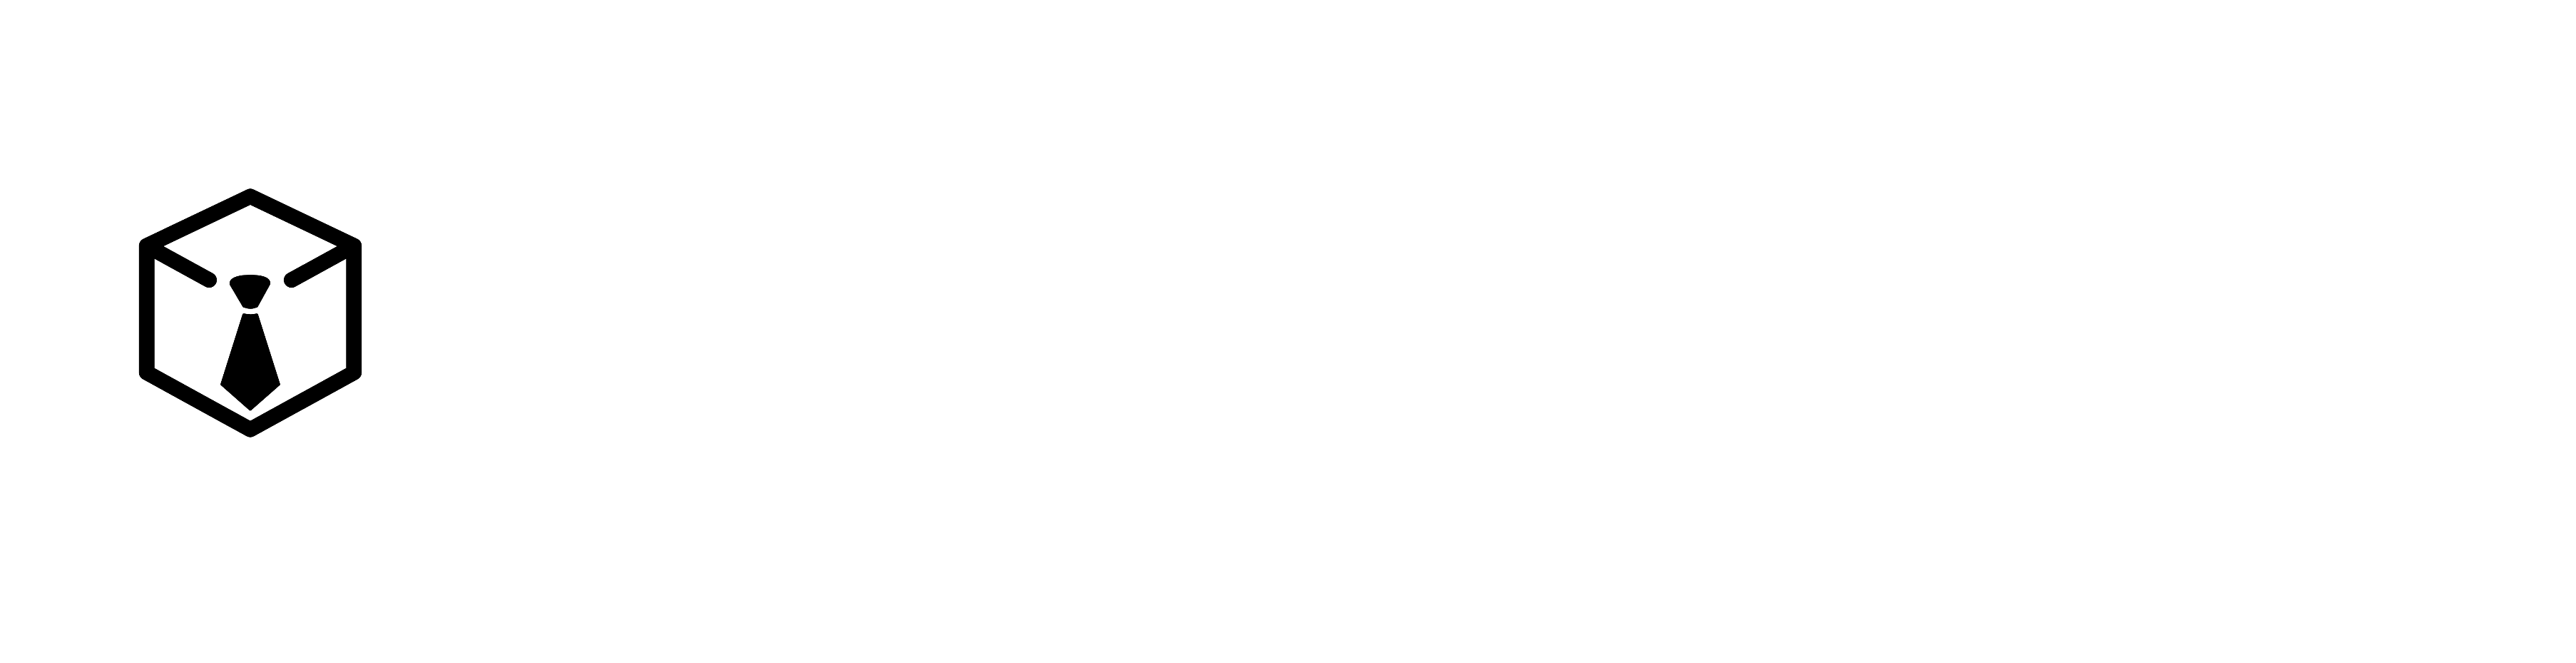 Fluency Space – Advanced Business English Fluency Coaching Online